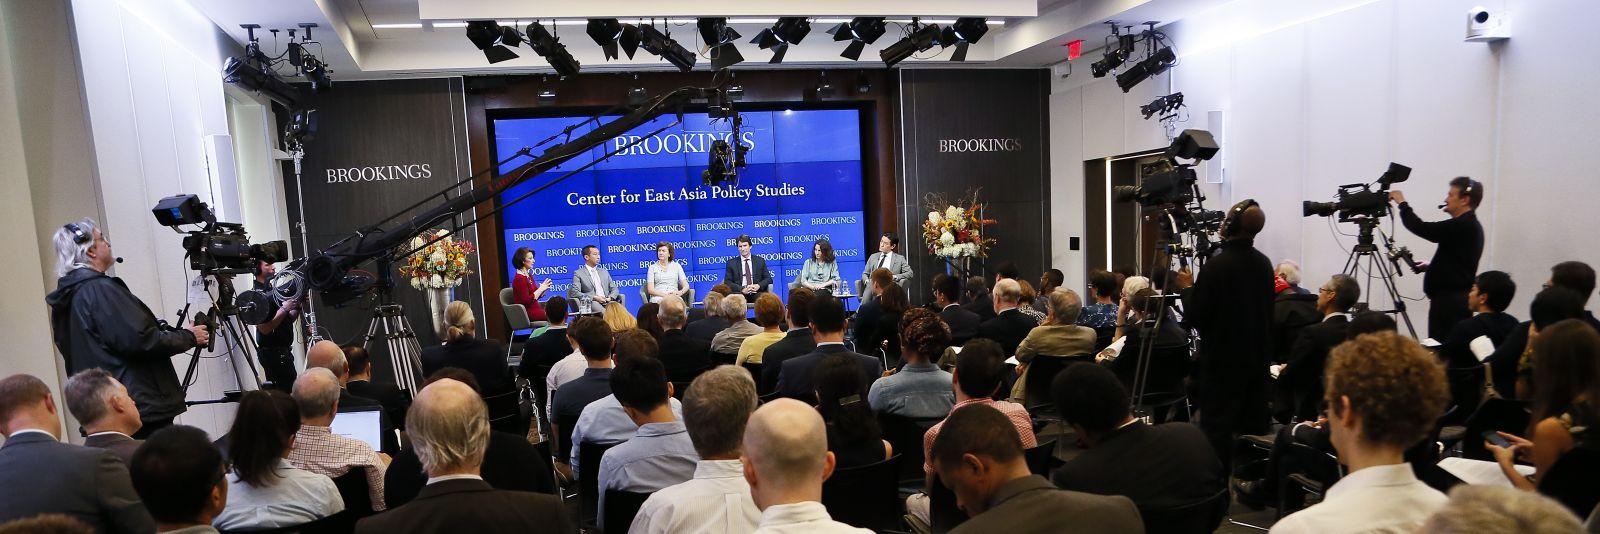 'Balancing act': Fiona Hill @tanvi_madan @A_Sloat @solis_msolis @ConStelz & @brucebrookings discuss how U.S.-China… https://t.co/e8wtMVoEPH